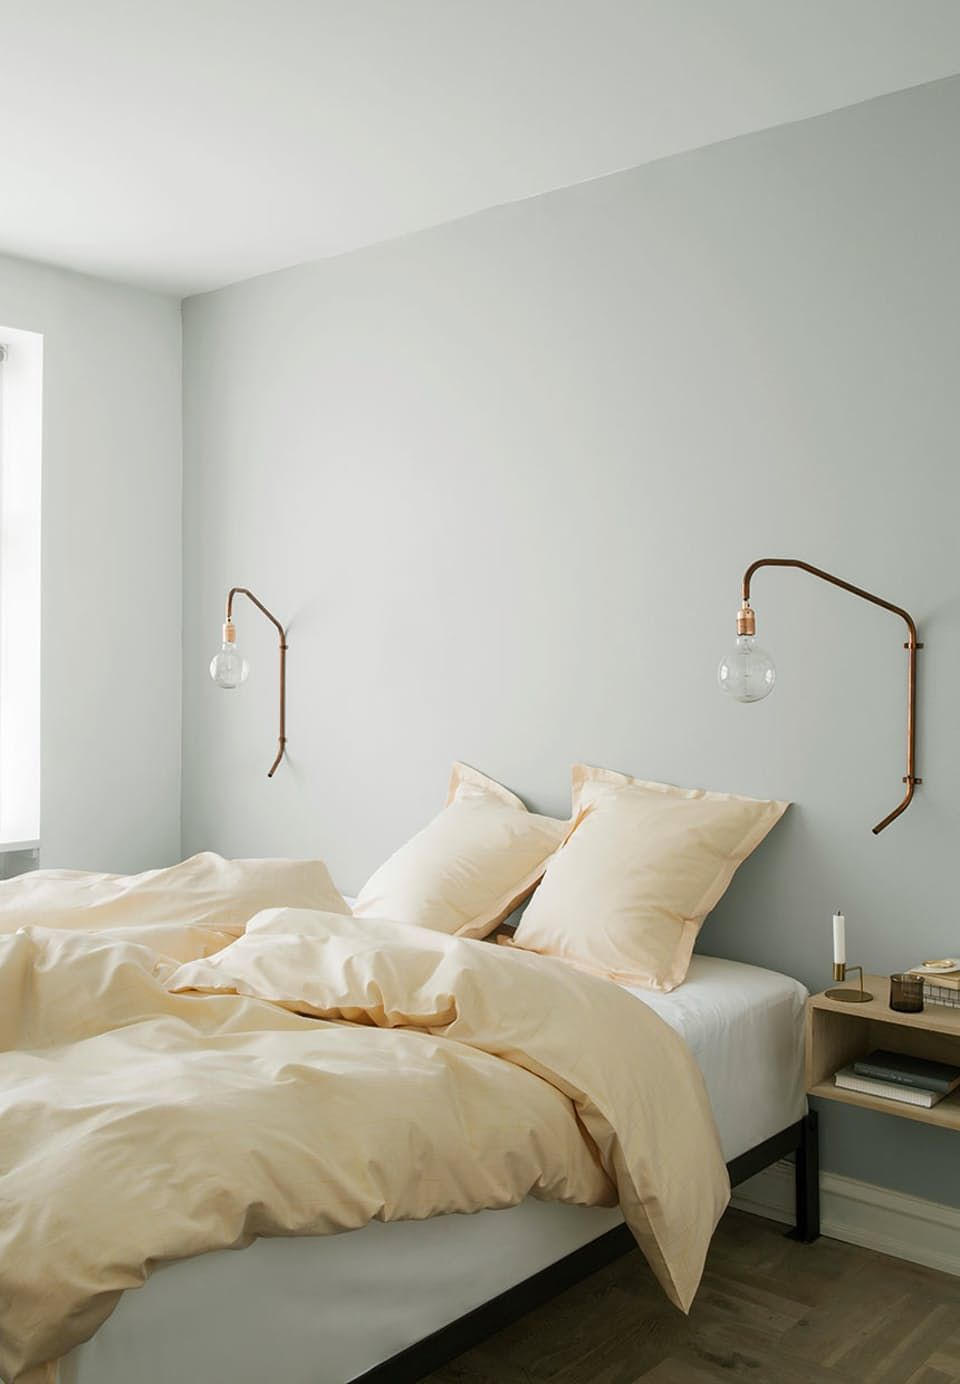 A minimalistic inspired bedroom with copper lamps